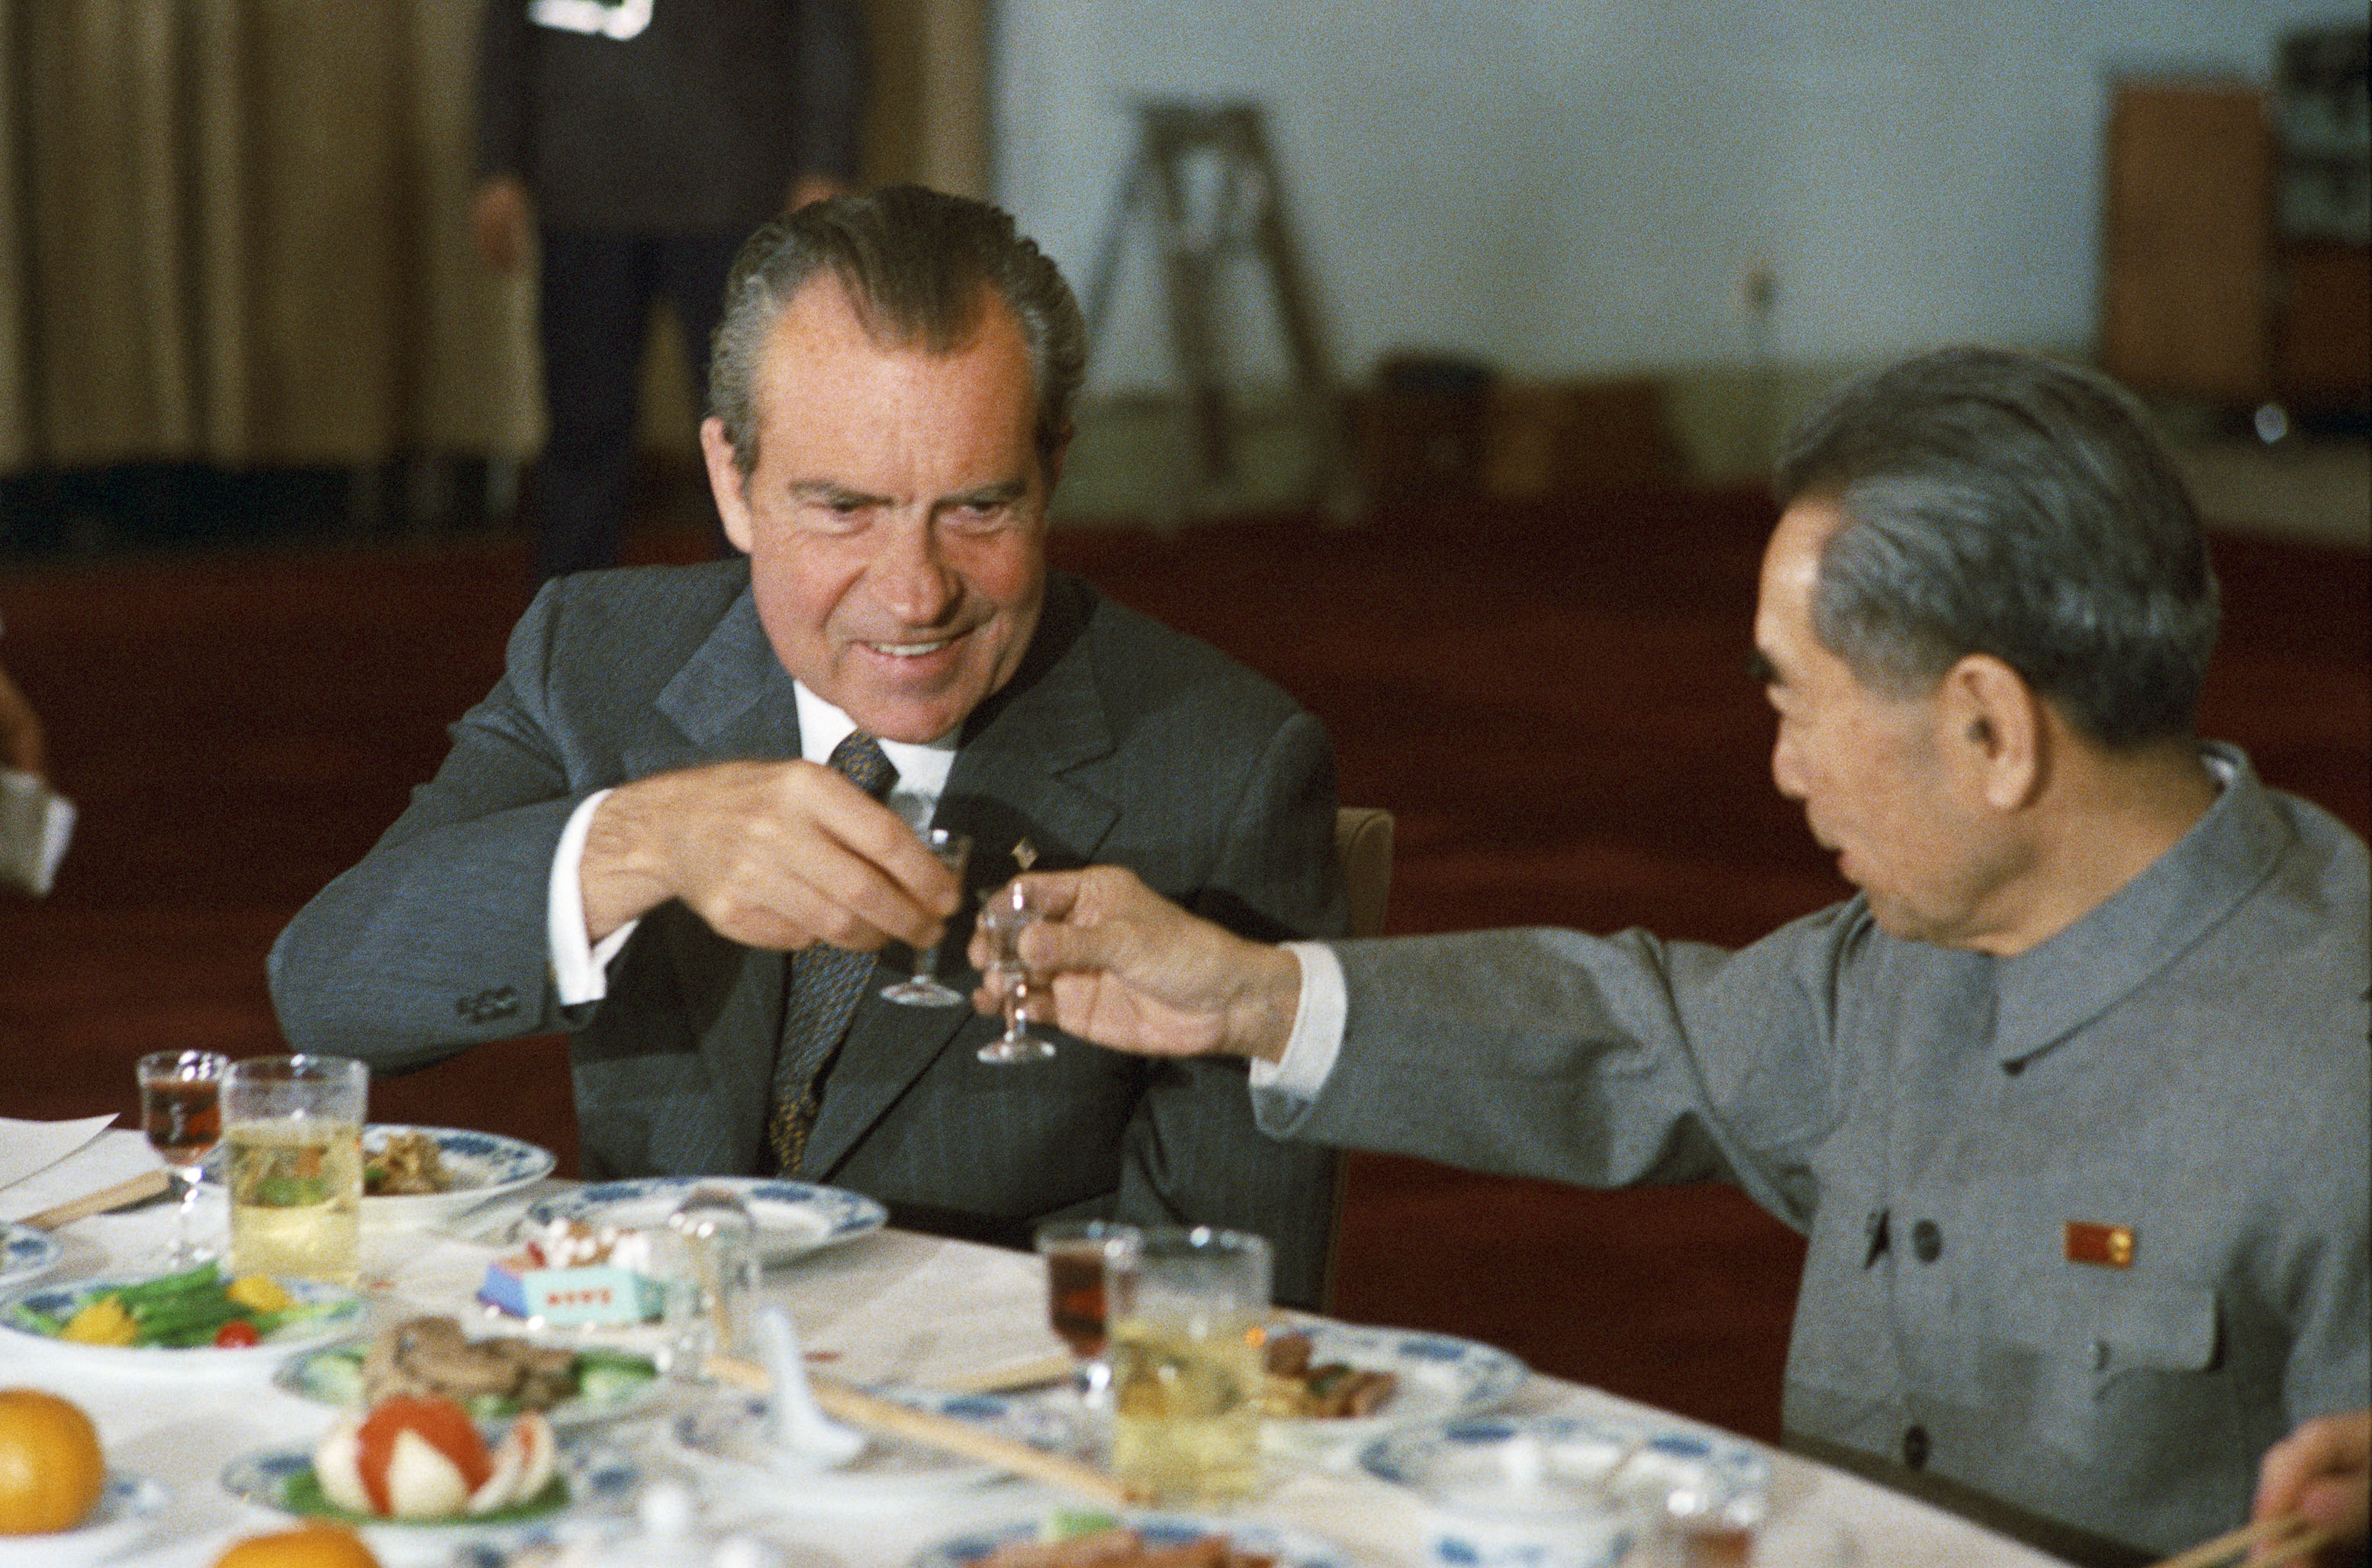 Iran Deal: Is Obama Channeling Nixon?